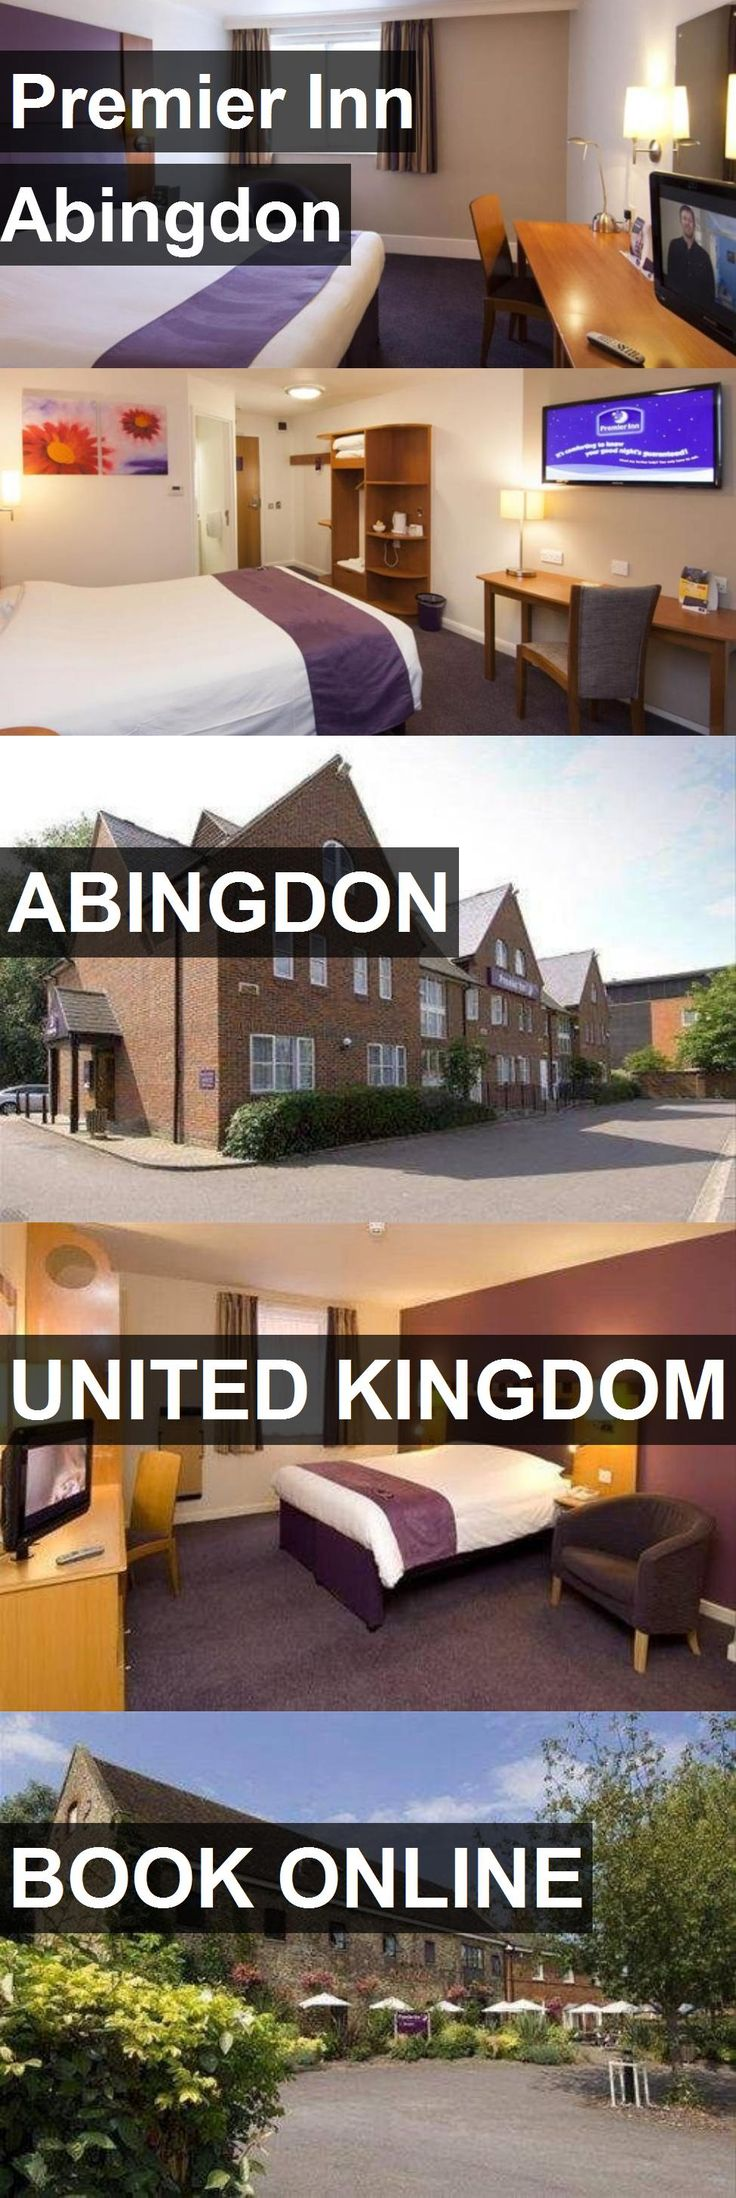 Hotel Premier Inn Abingdon in Abingdon, United Kingdom. For more information, photos, reviews and best prices please follow the link. #UnitedKingdom #Abingdon #PremierInnAbingdon #hotel #travel #vacation